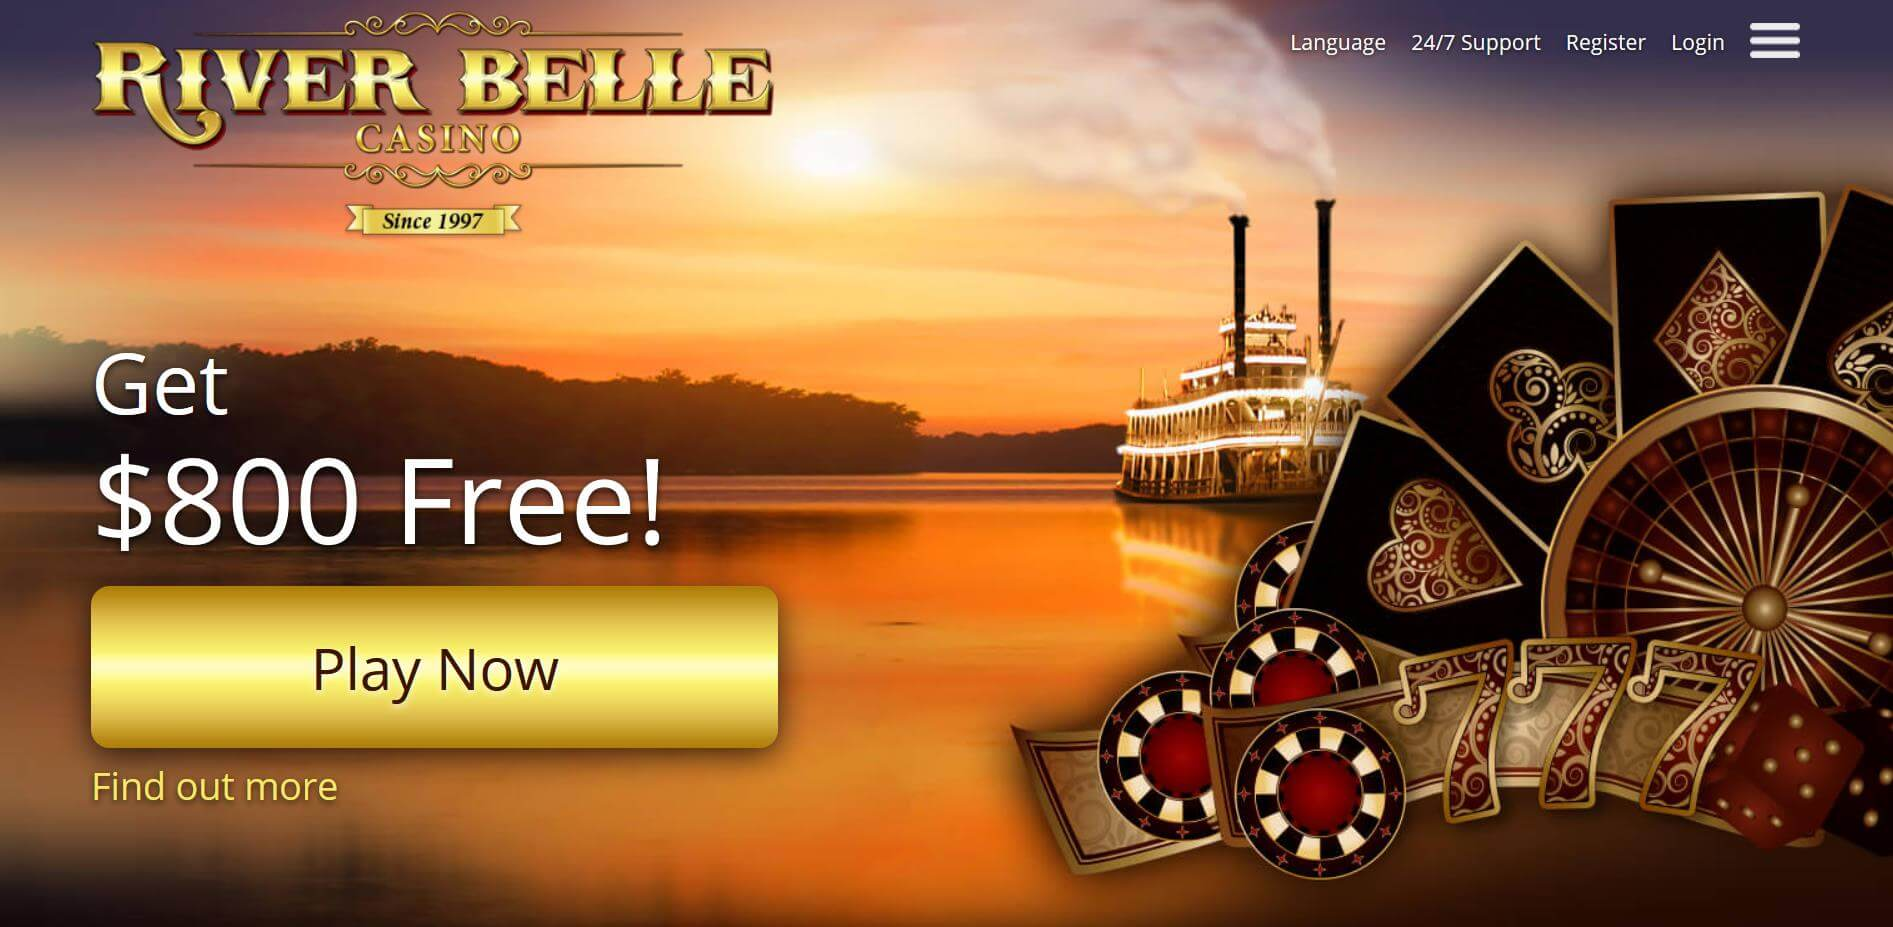 River belle casino review: is the interface user friendly ?